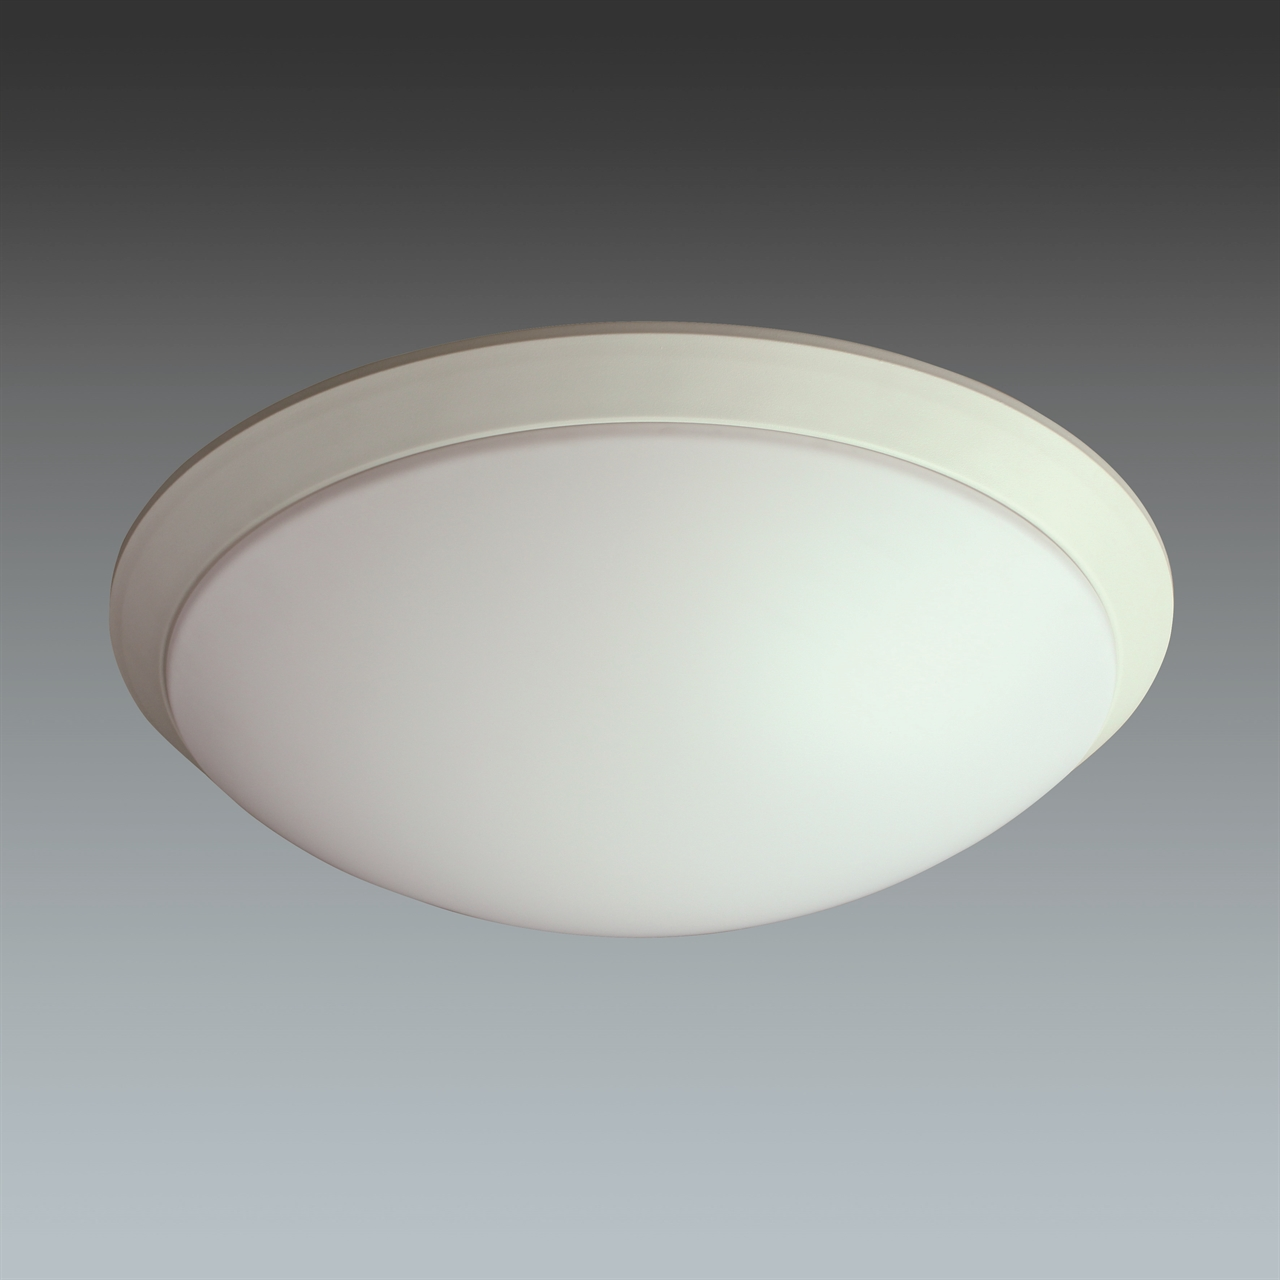 ceiling mounted motion sensor lights photo - 1